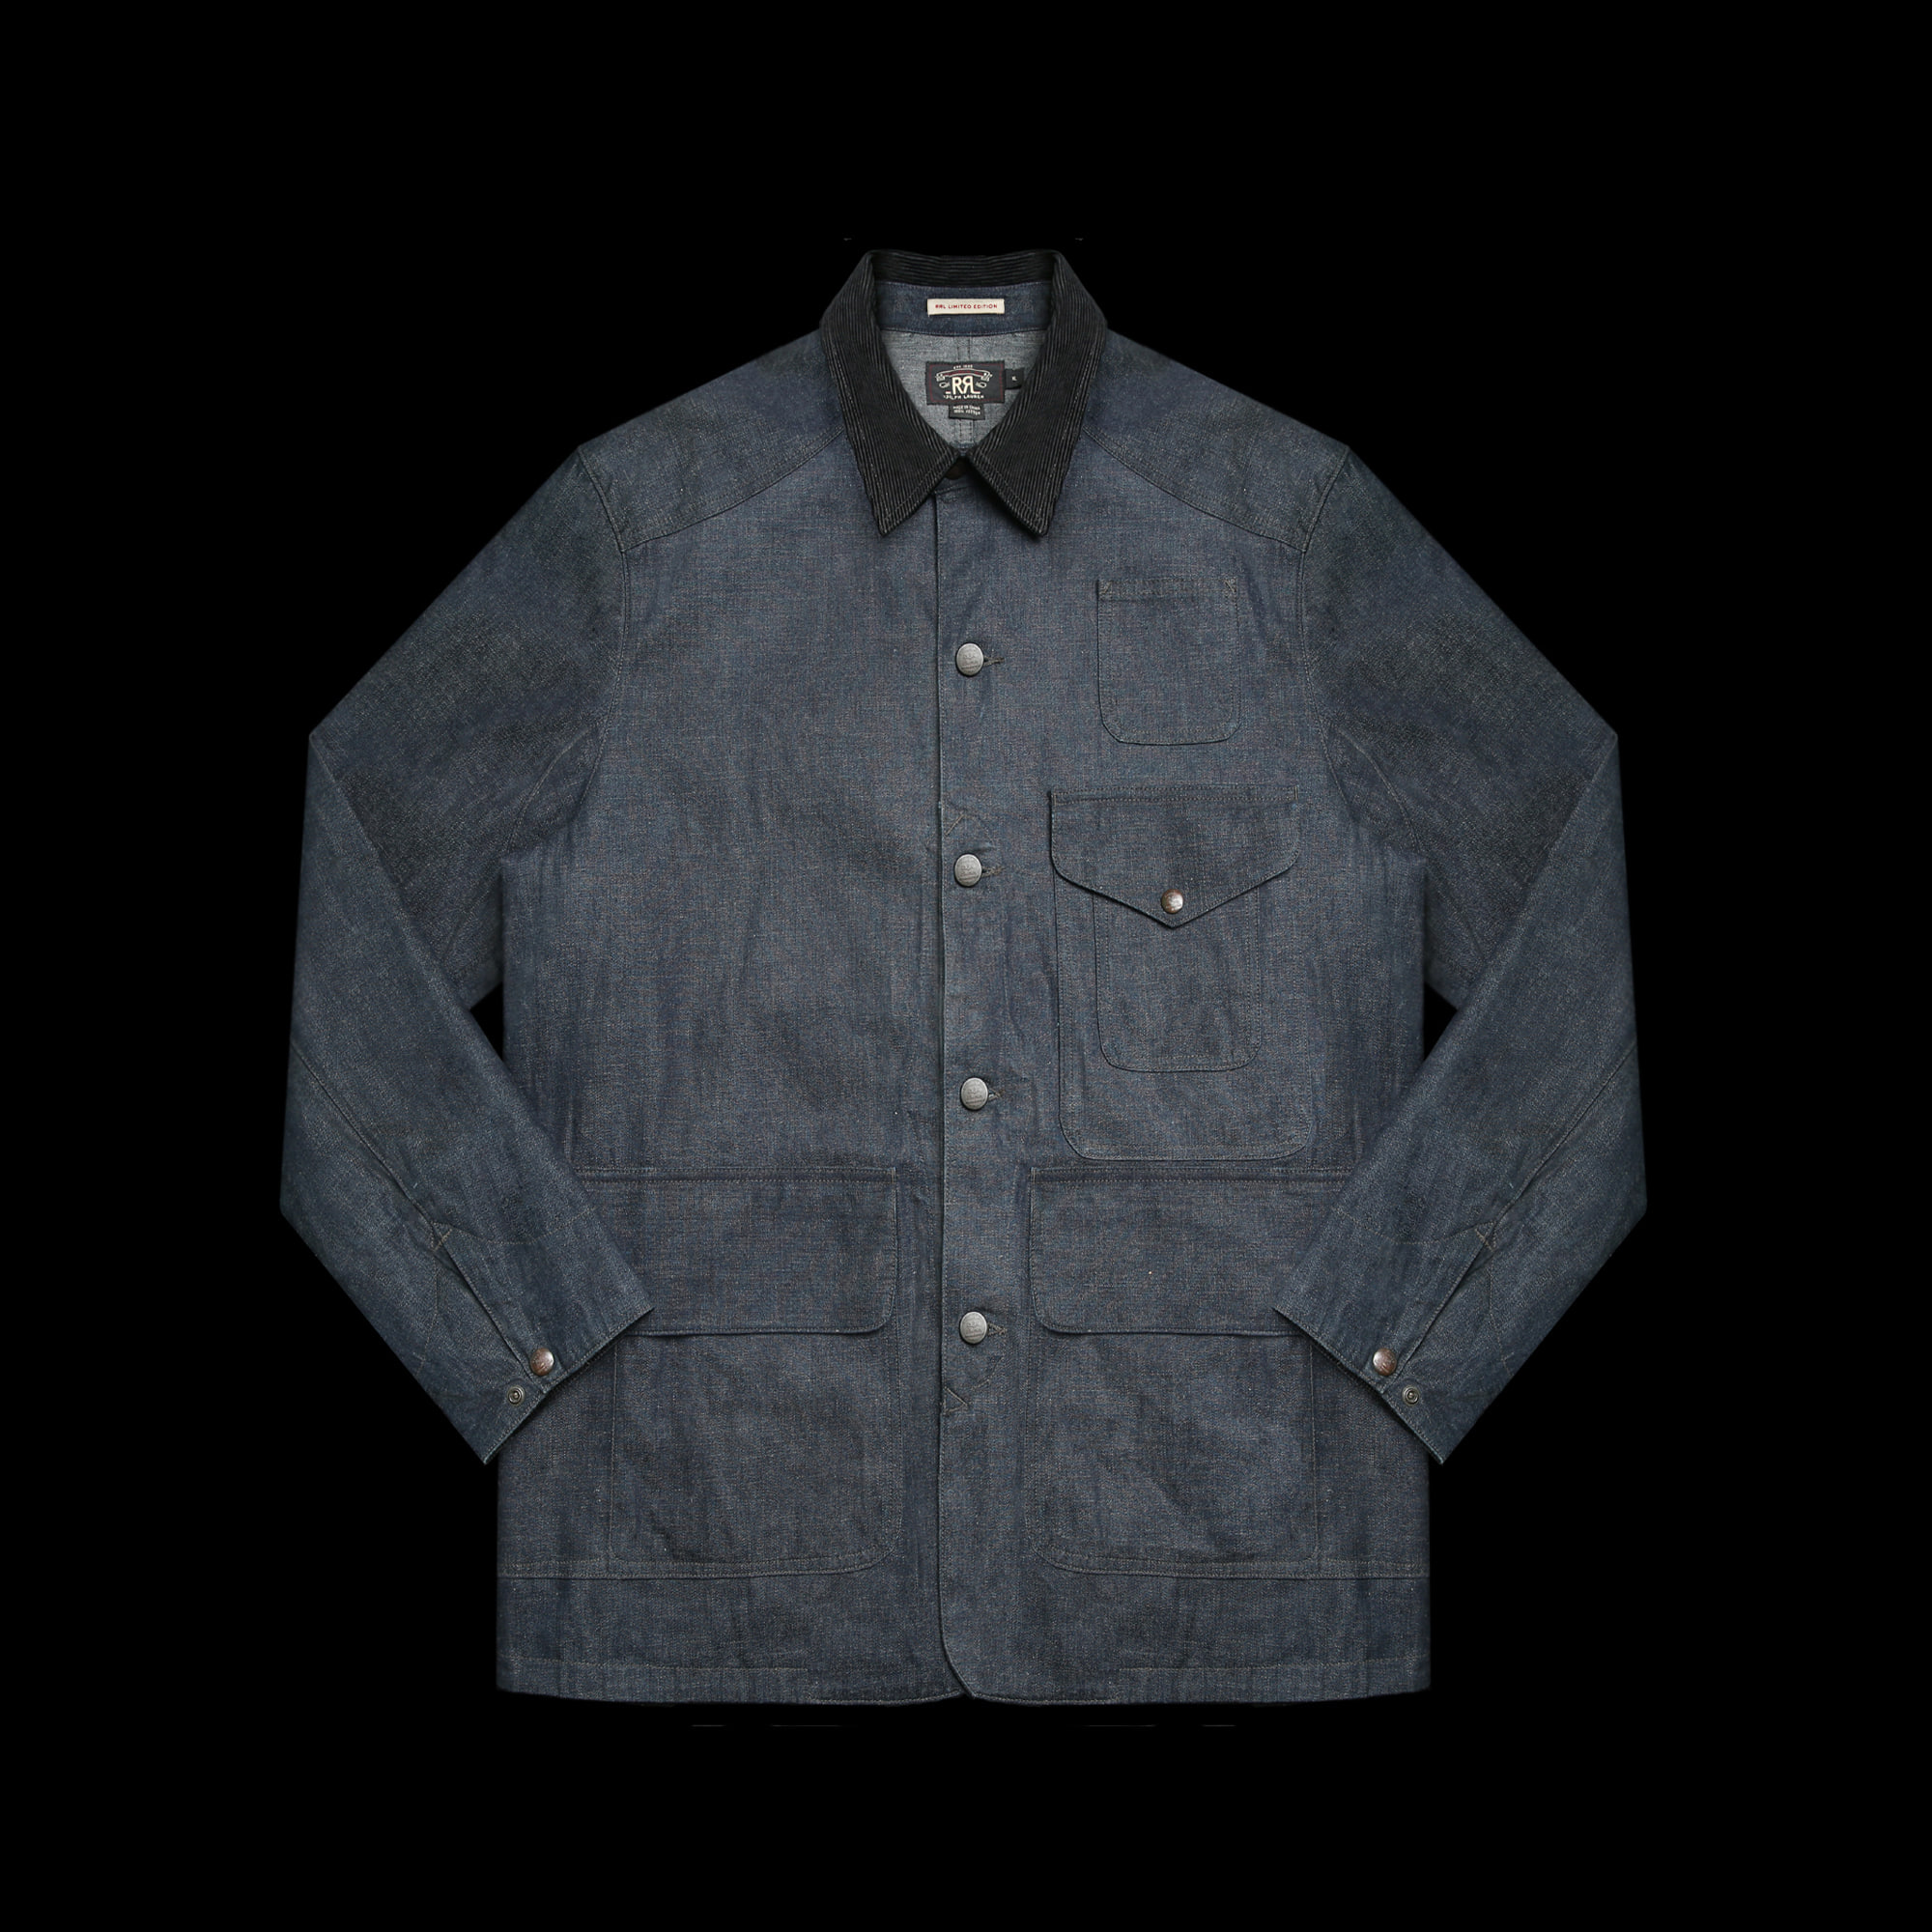 RRLLIMITED EDITIONRIGID HUNTING JACKET